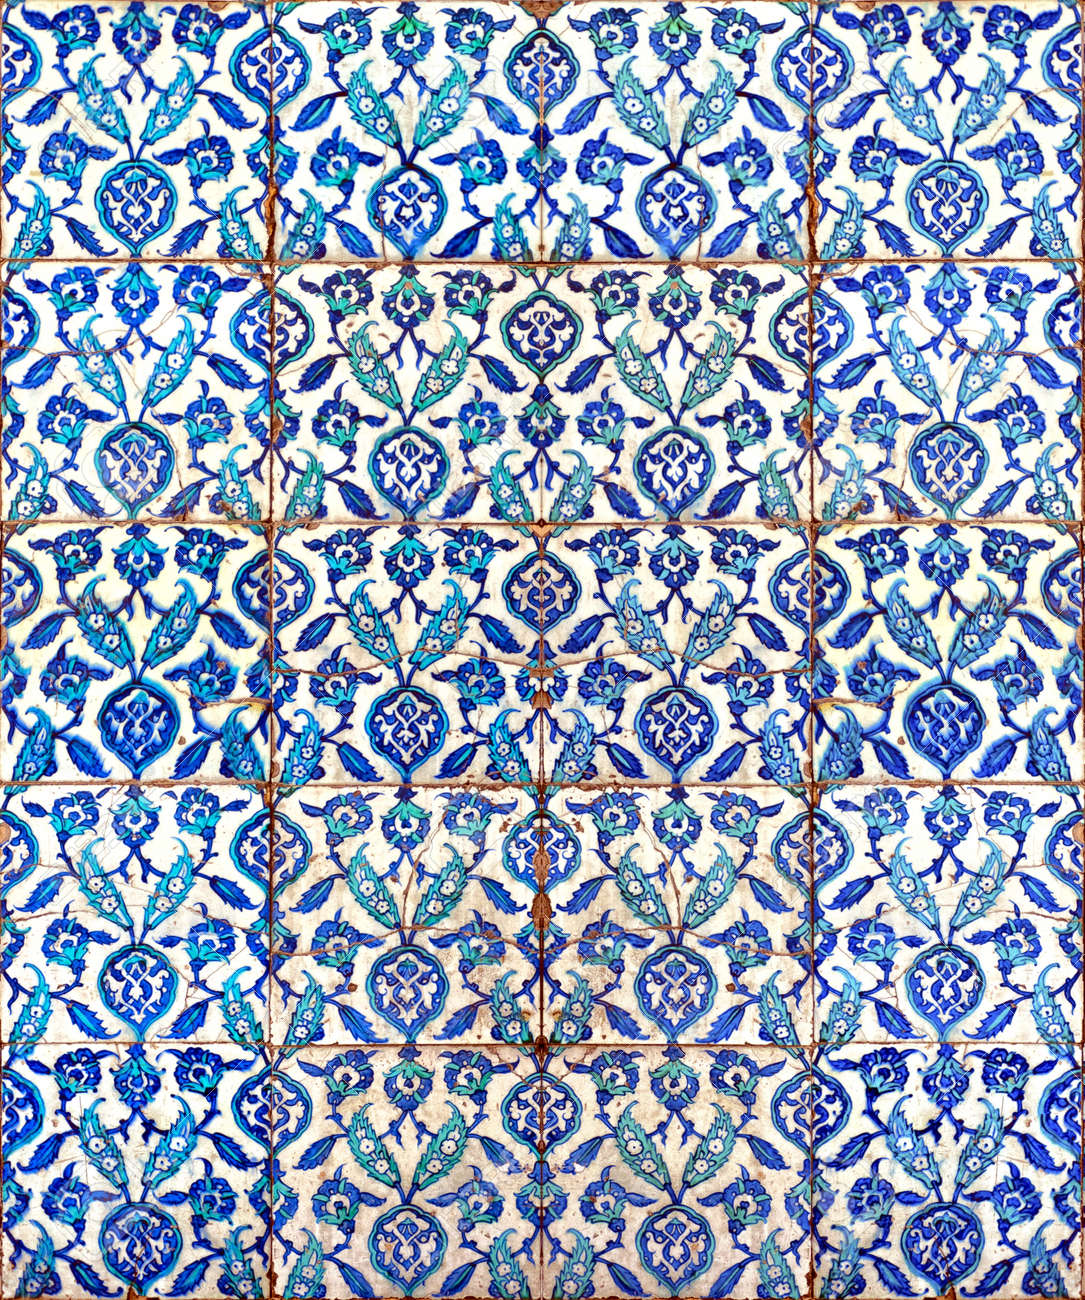 A seamless background image of ancient hand painted ceramic tiles a seamless background image of ancient hand painted ceramic tiles from an islamic mosque stock dailygadgetfo Image collections